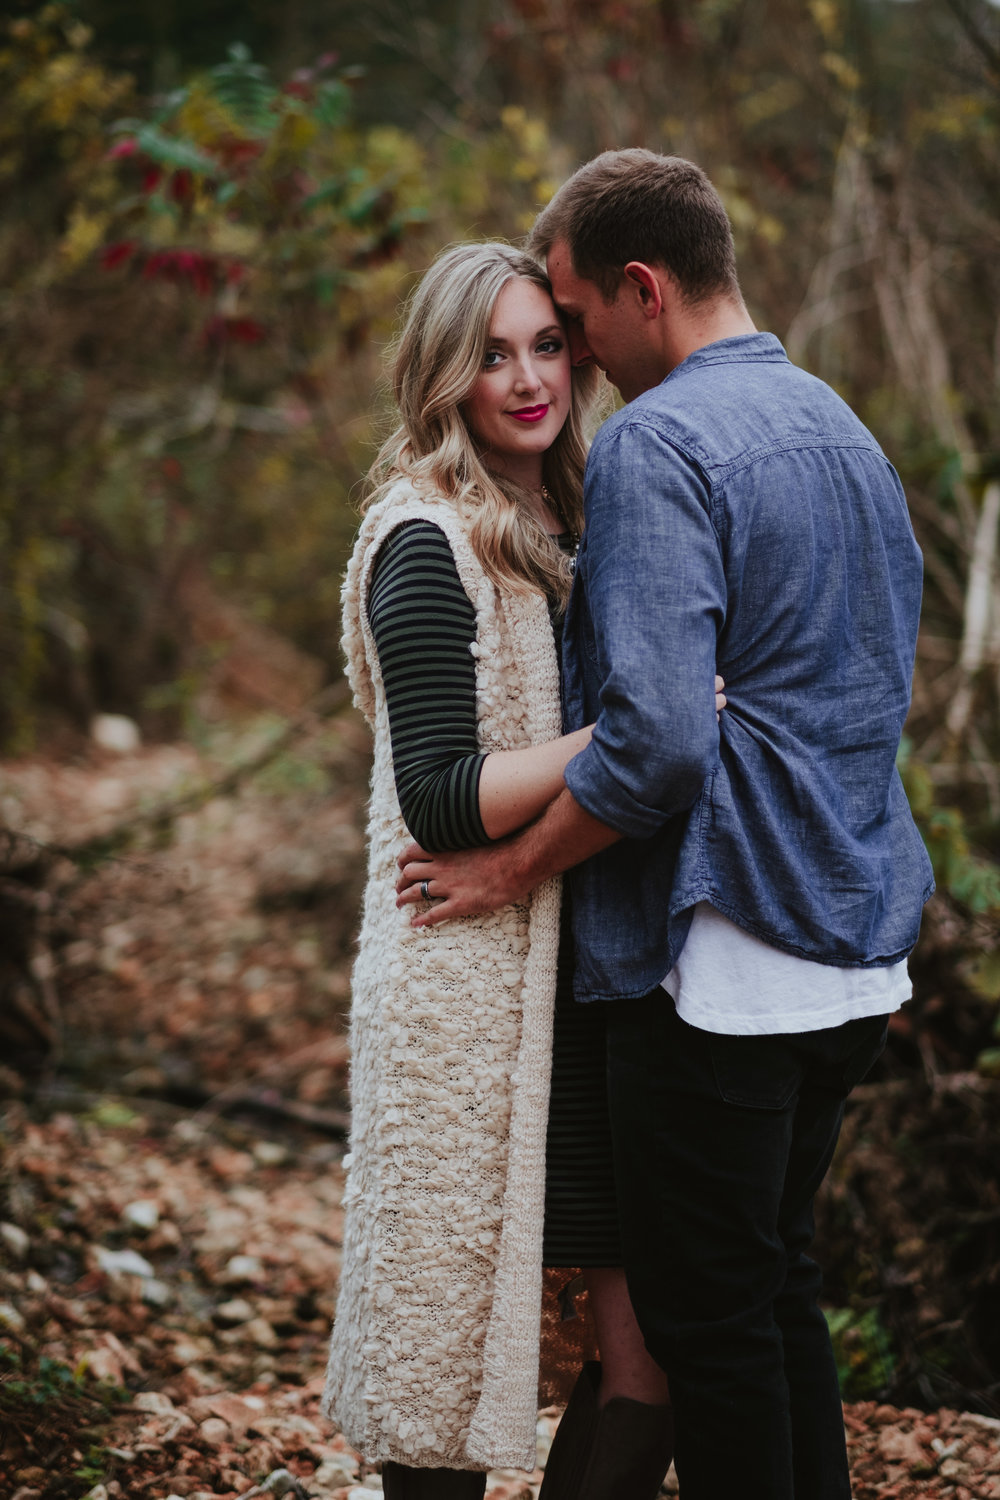 Micah.Chris.Maternity.2016.Delyn.Megan.Stirewalt-32.jpg